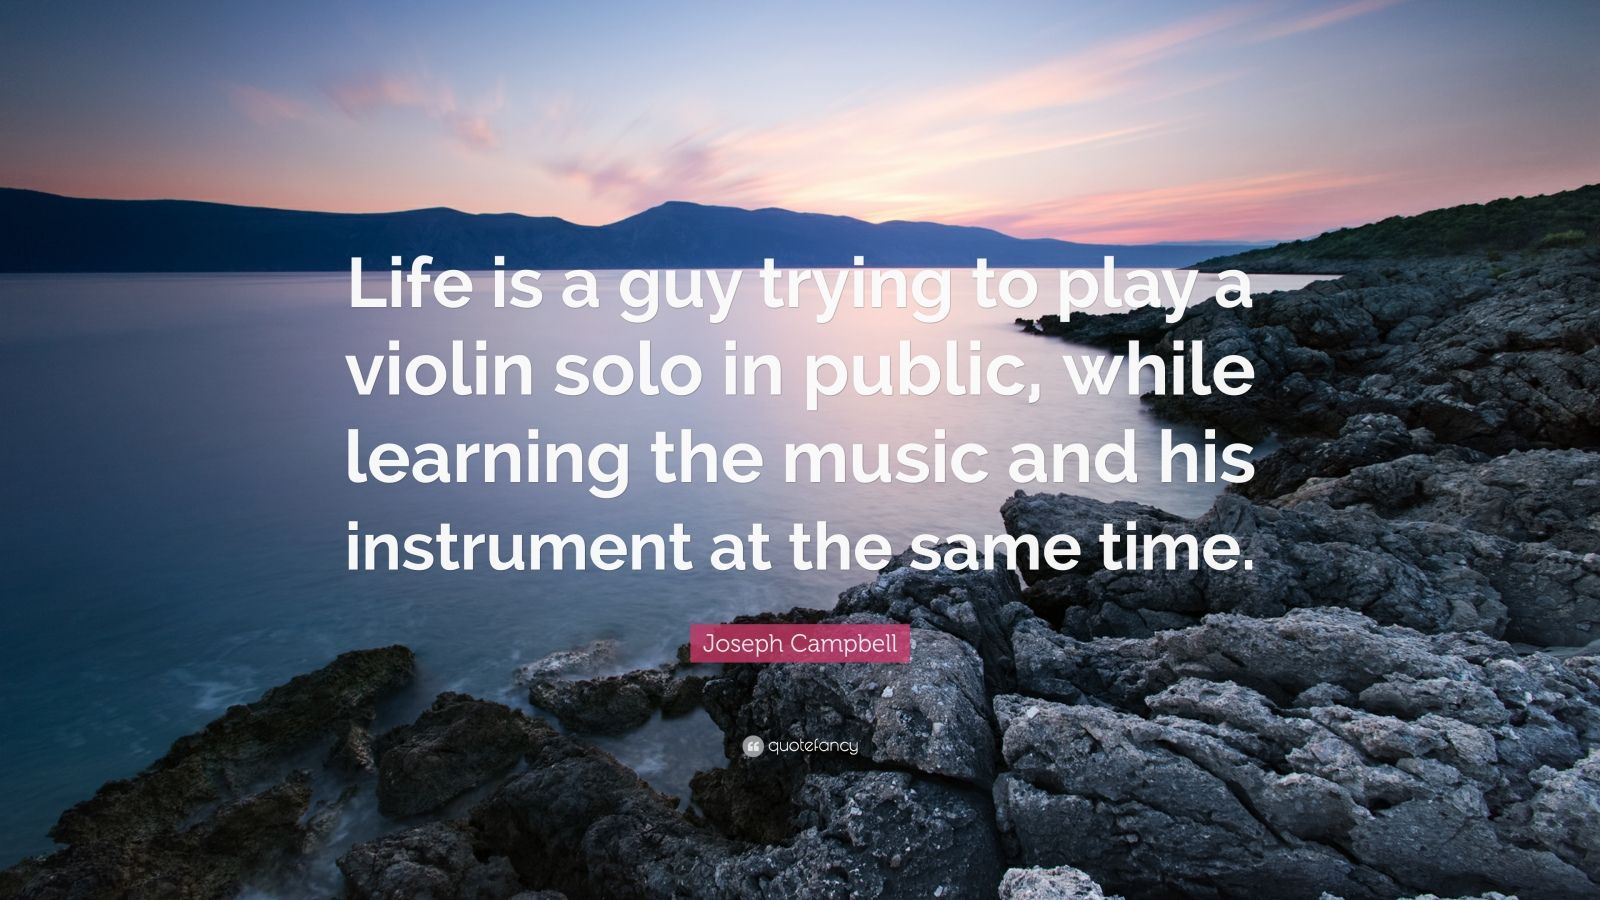 """Joseph Campbell Quote: """"Life is a guy trying to play a violin solo in public, while learning the music and his instrument at the same time."""""""